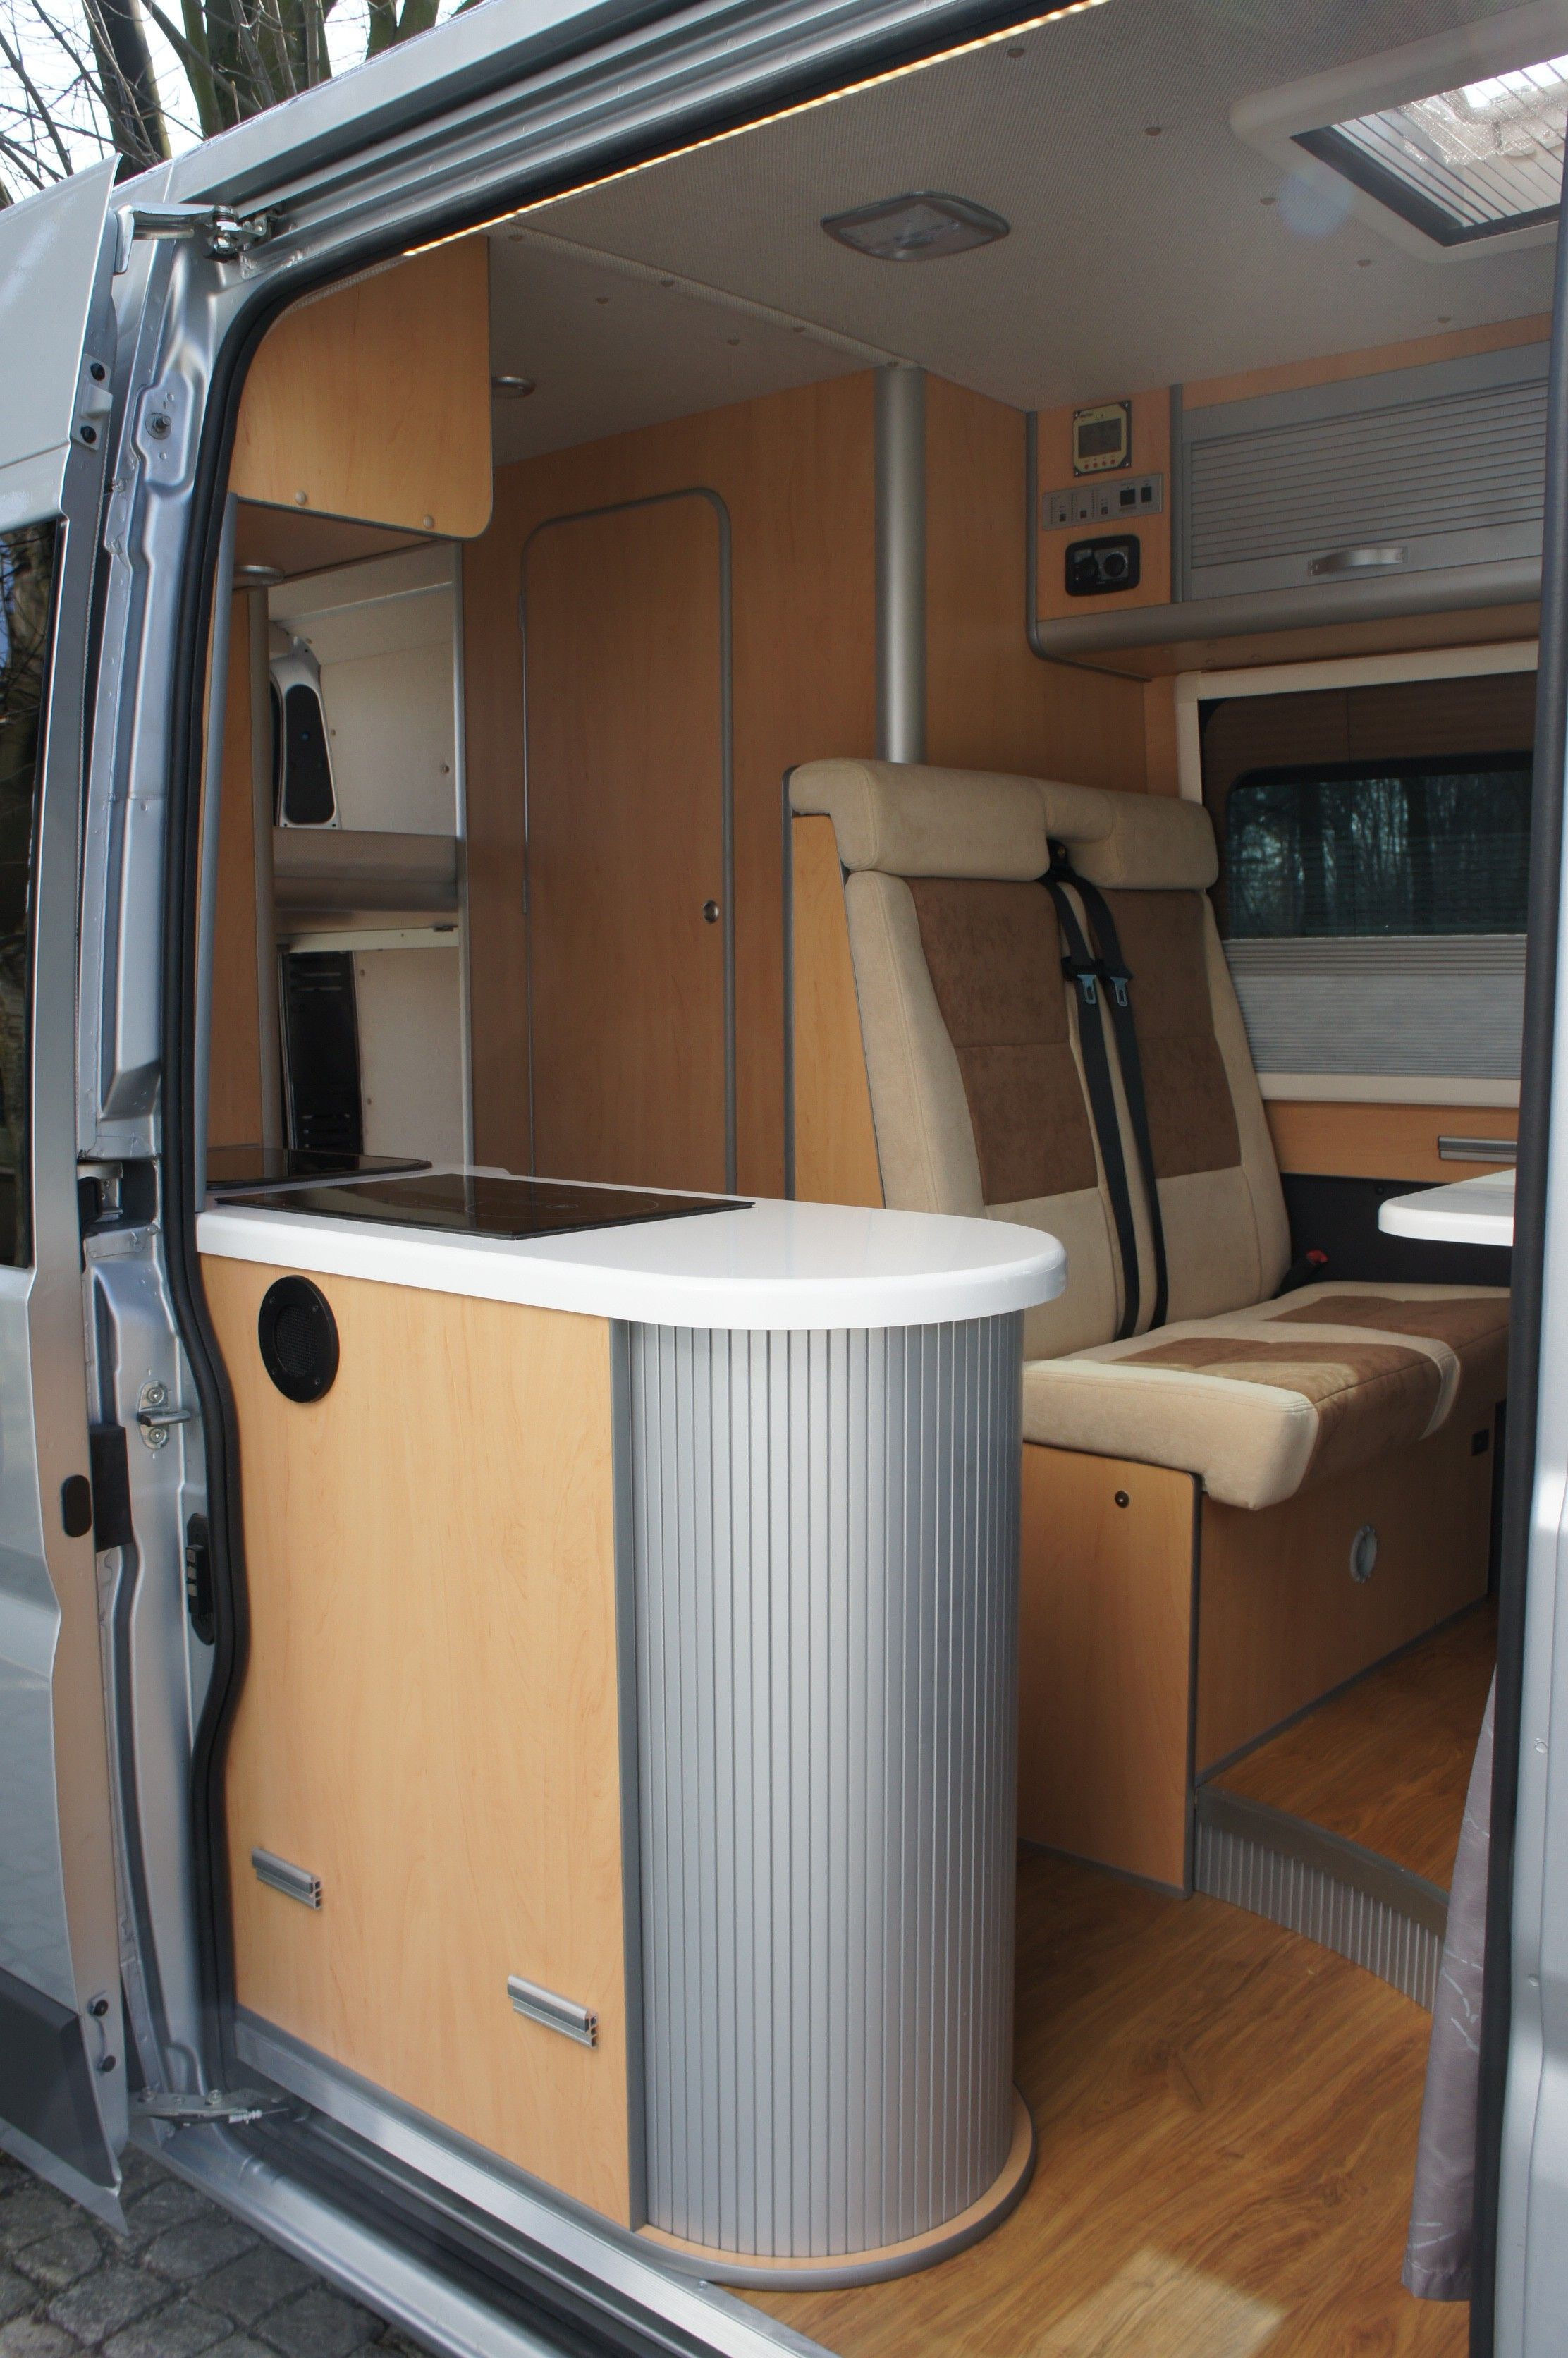 Camper Van Conversion For Beginner Sprinter Van Camper Camper